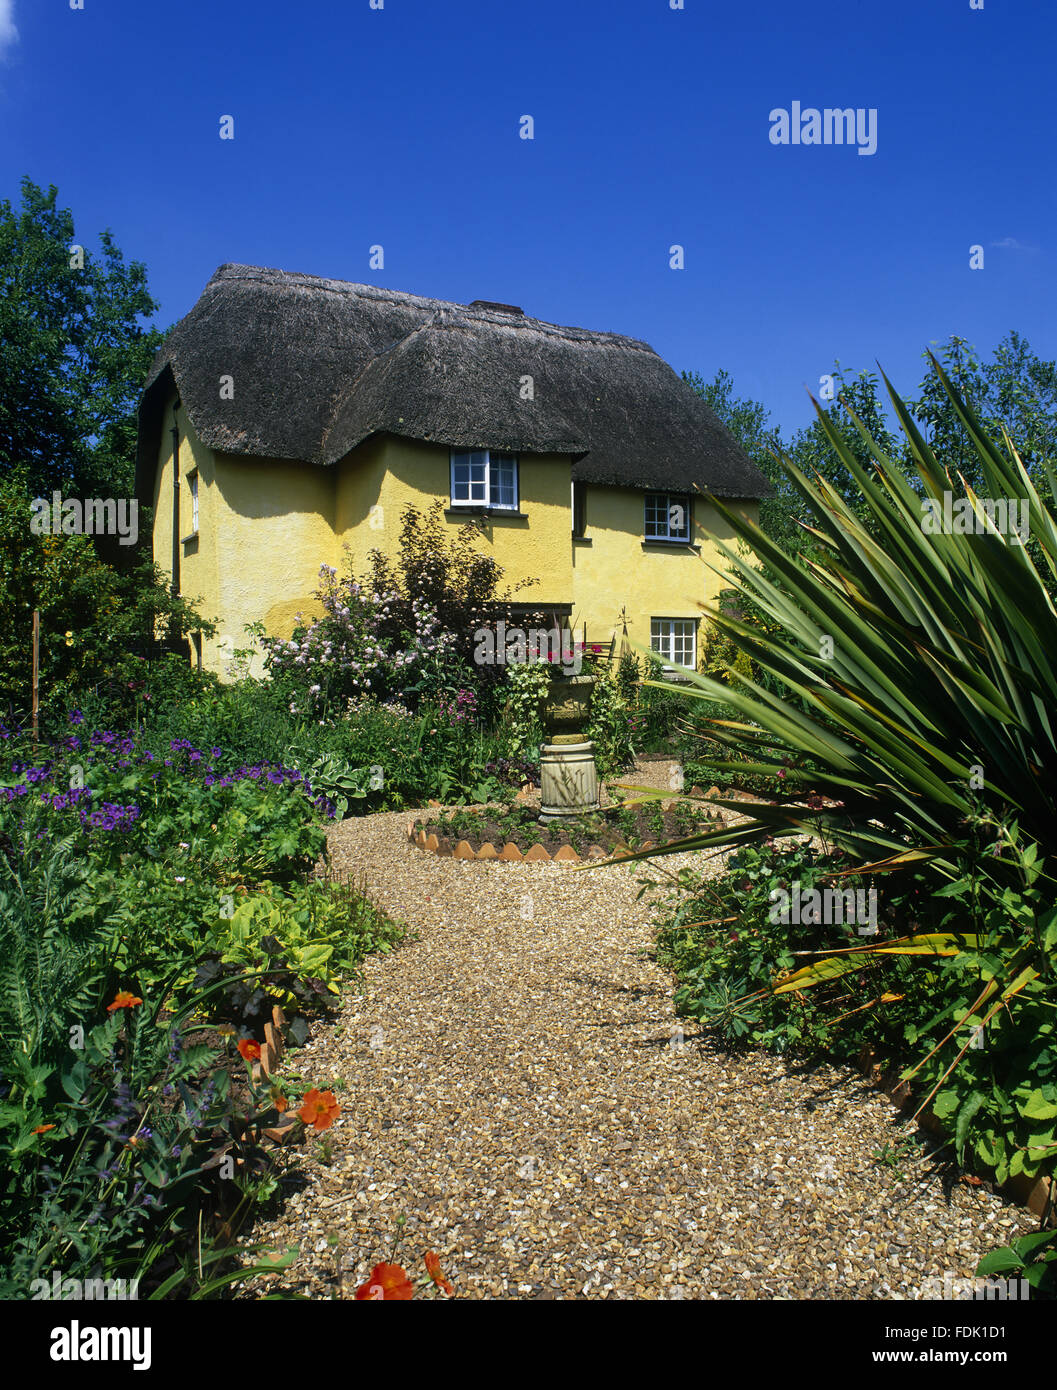 Cottage office Artists Budlake Post Office Housed In Small Thatched Cottage Served The Village Of Broadclyst At Killerton Devon Country Plans Budlake Post Office Housed In Small Thatched Cottage Served The